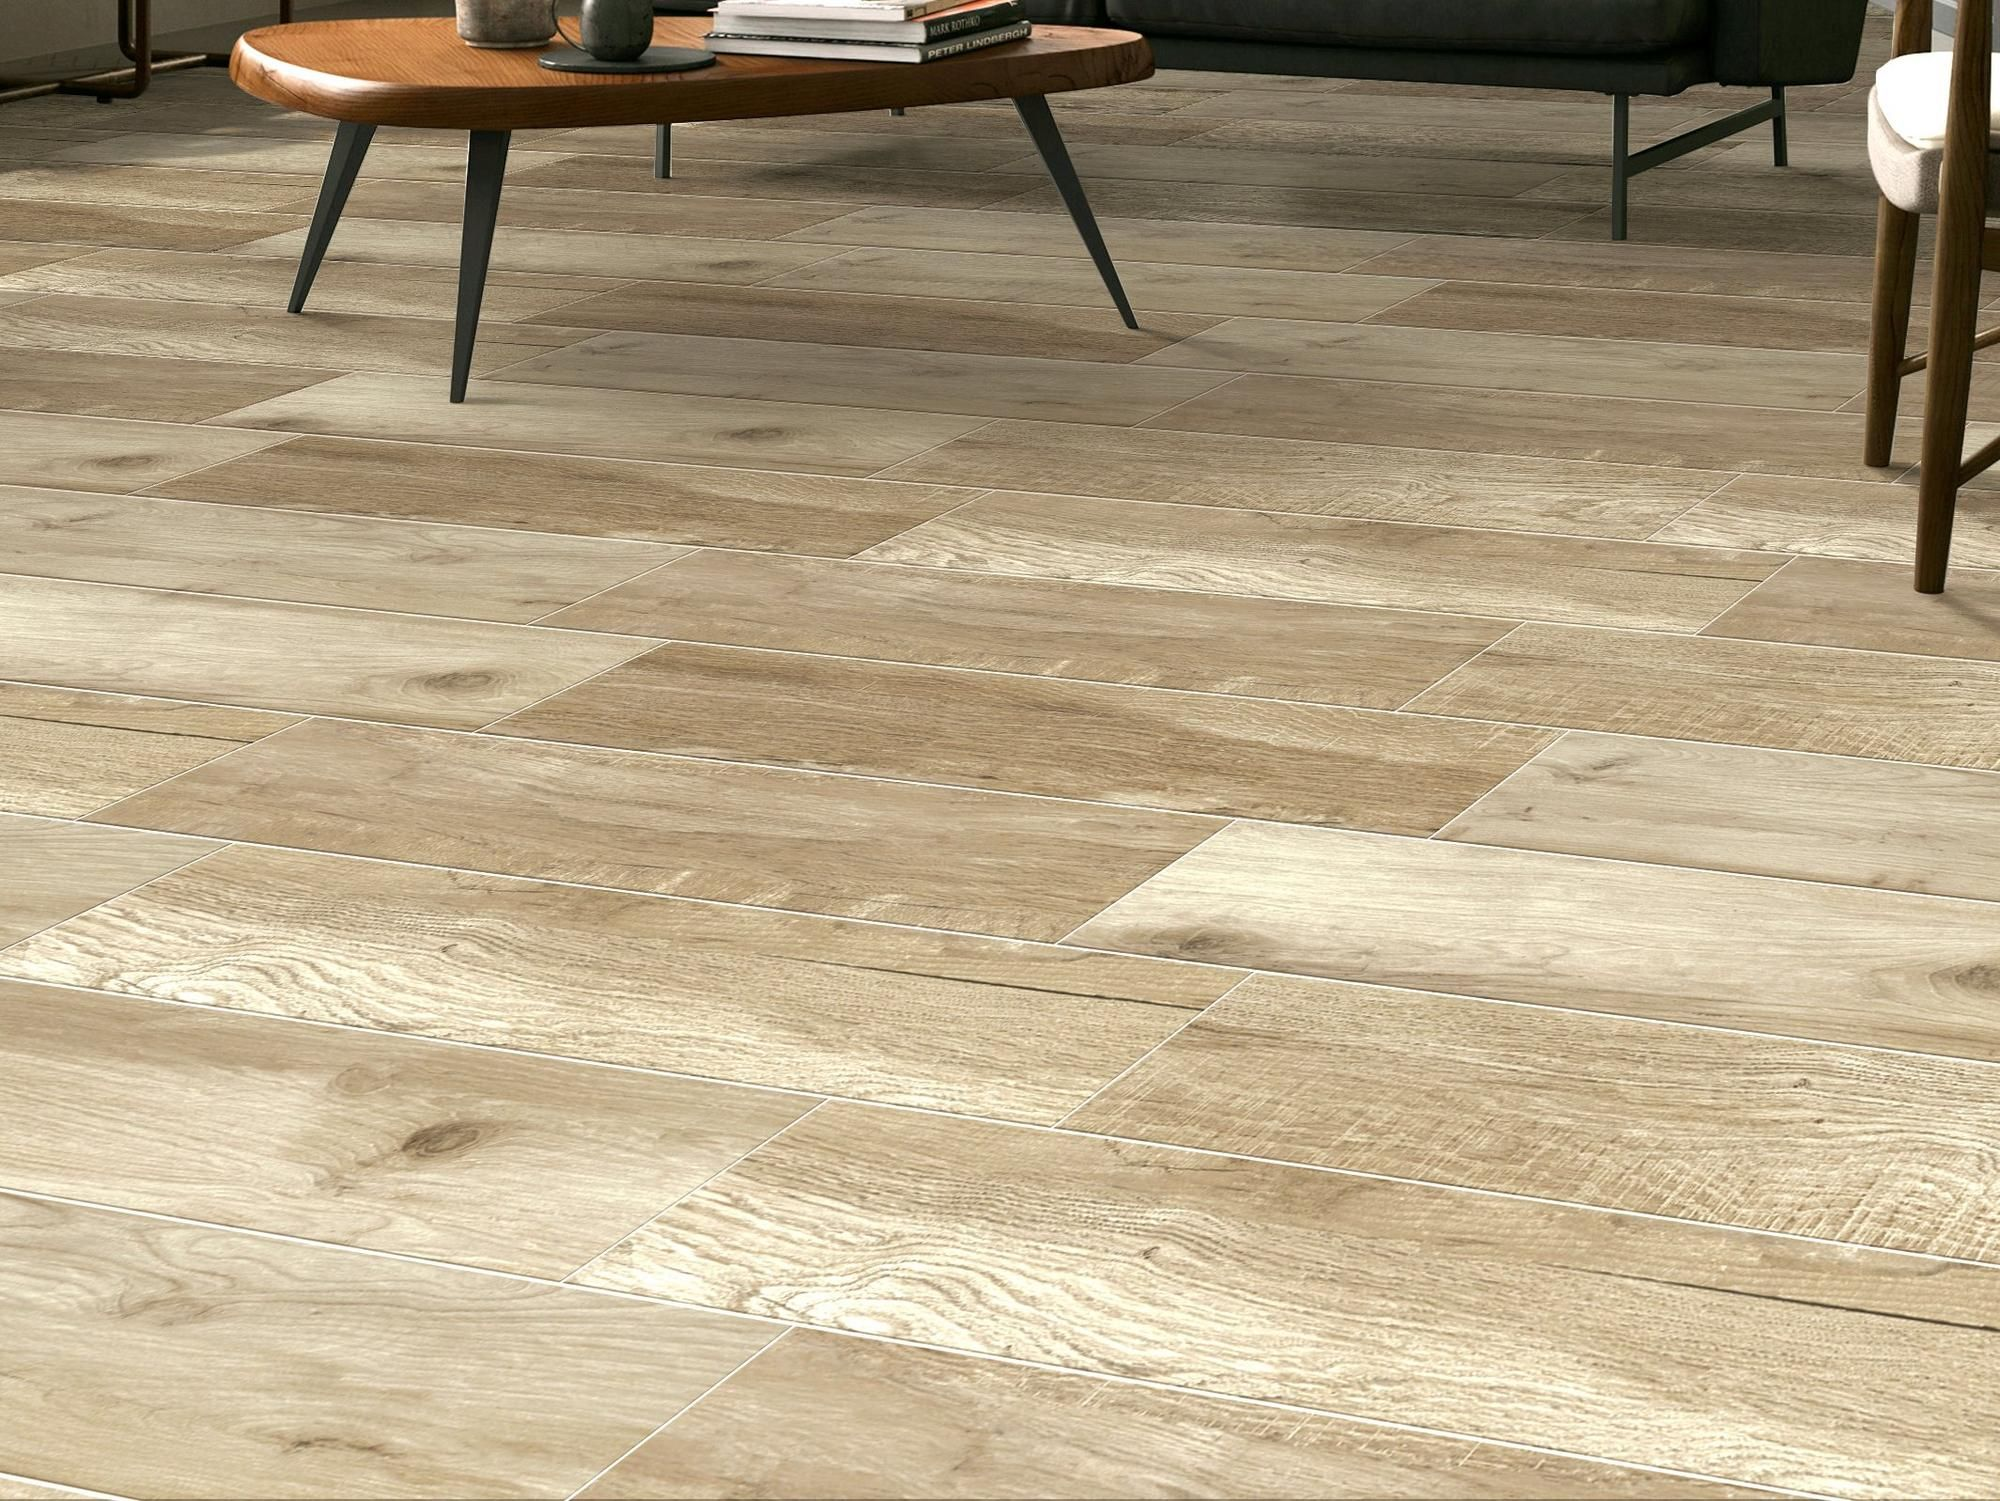 Bryce Canyon Timber Wood Plank Ceramic Tile Floor Decor In 2020 Timber Wood Wood Planks Ceramic Tiles